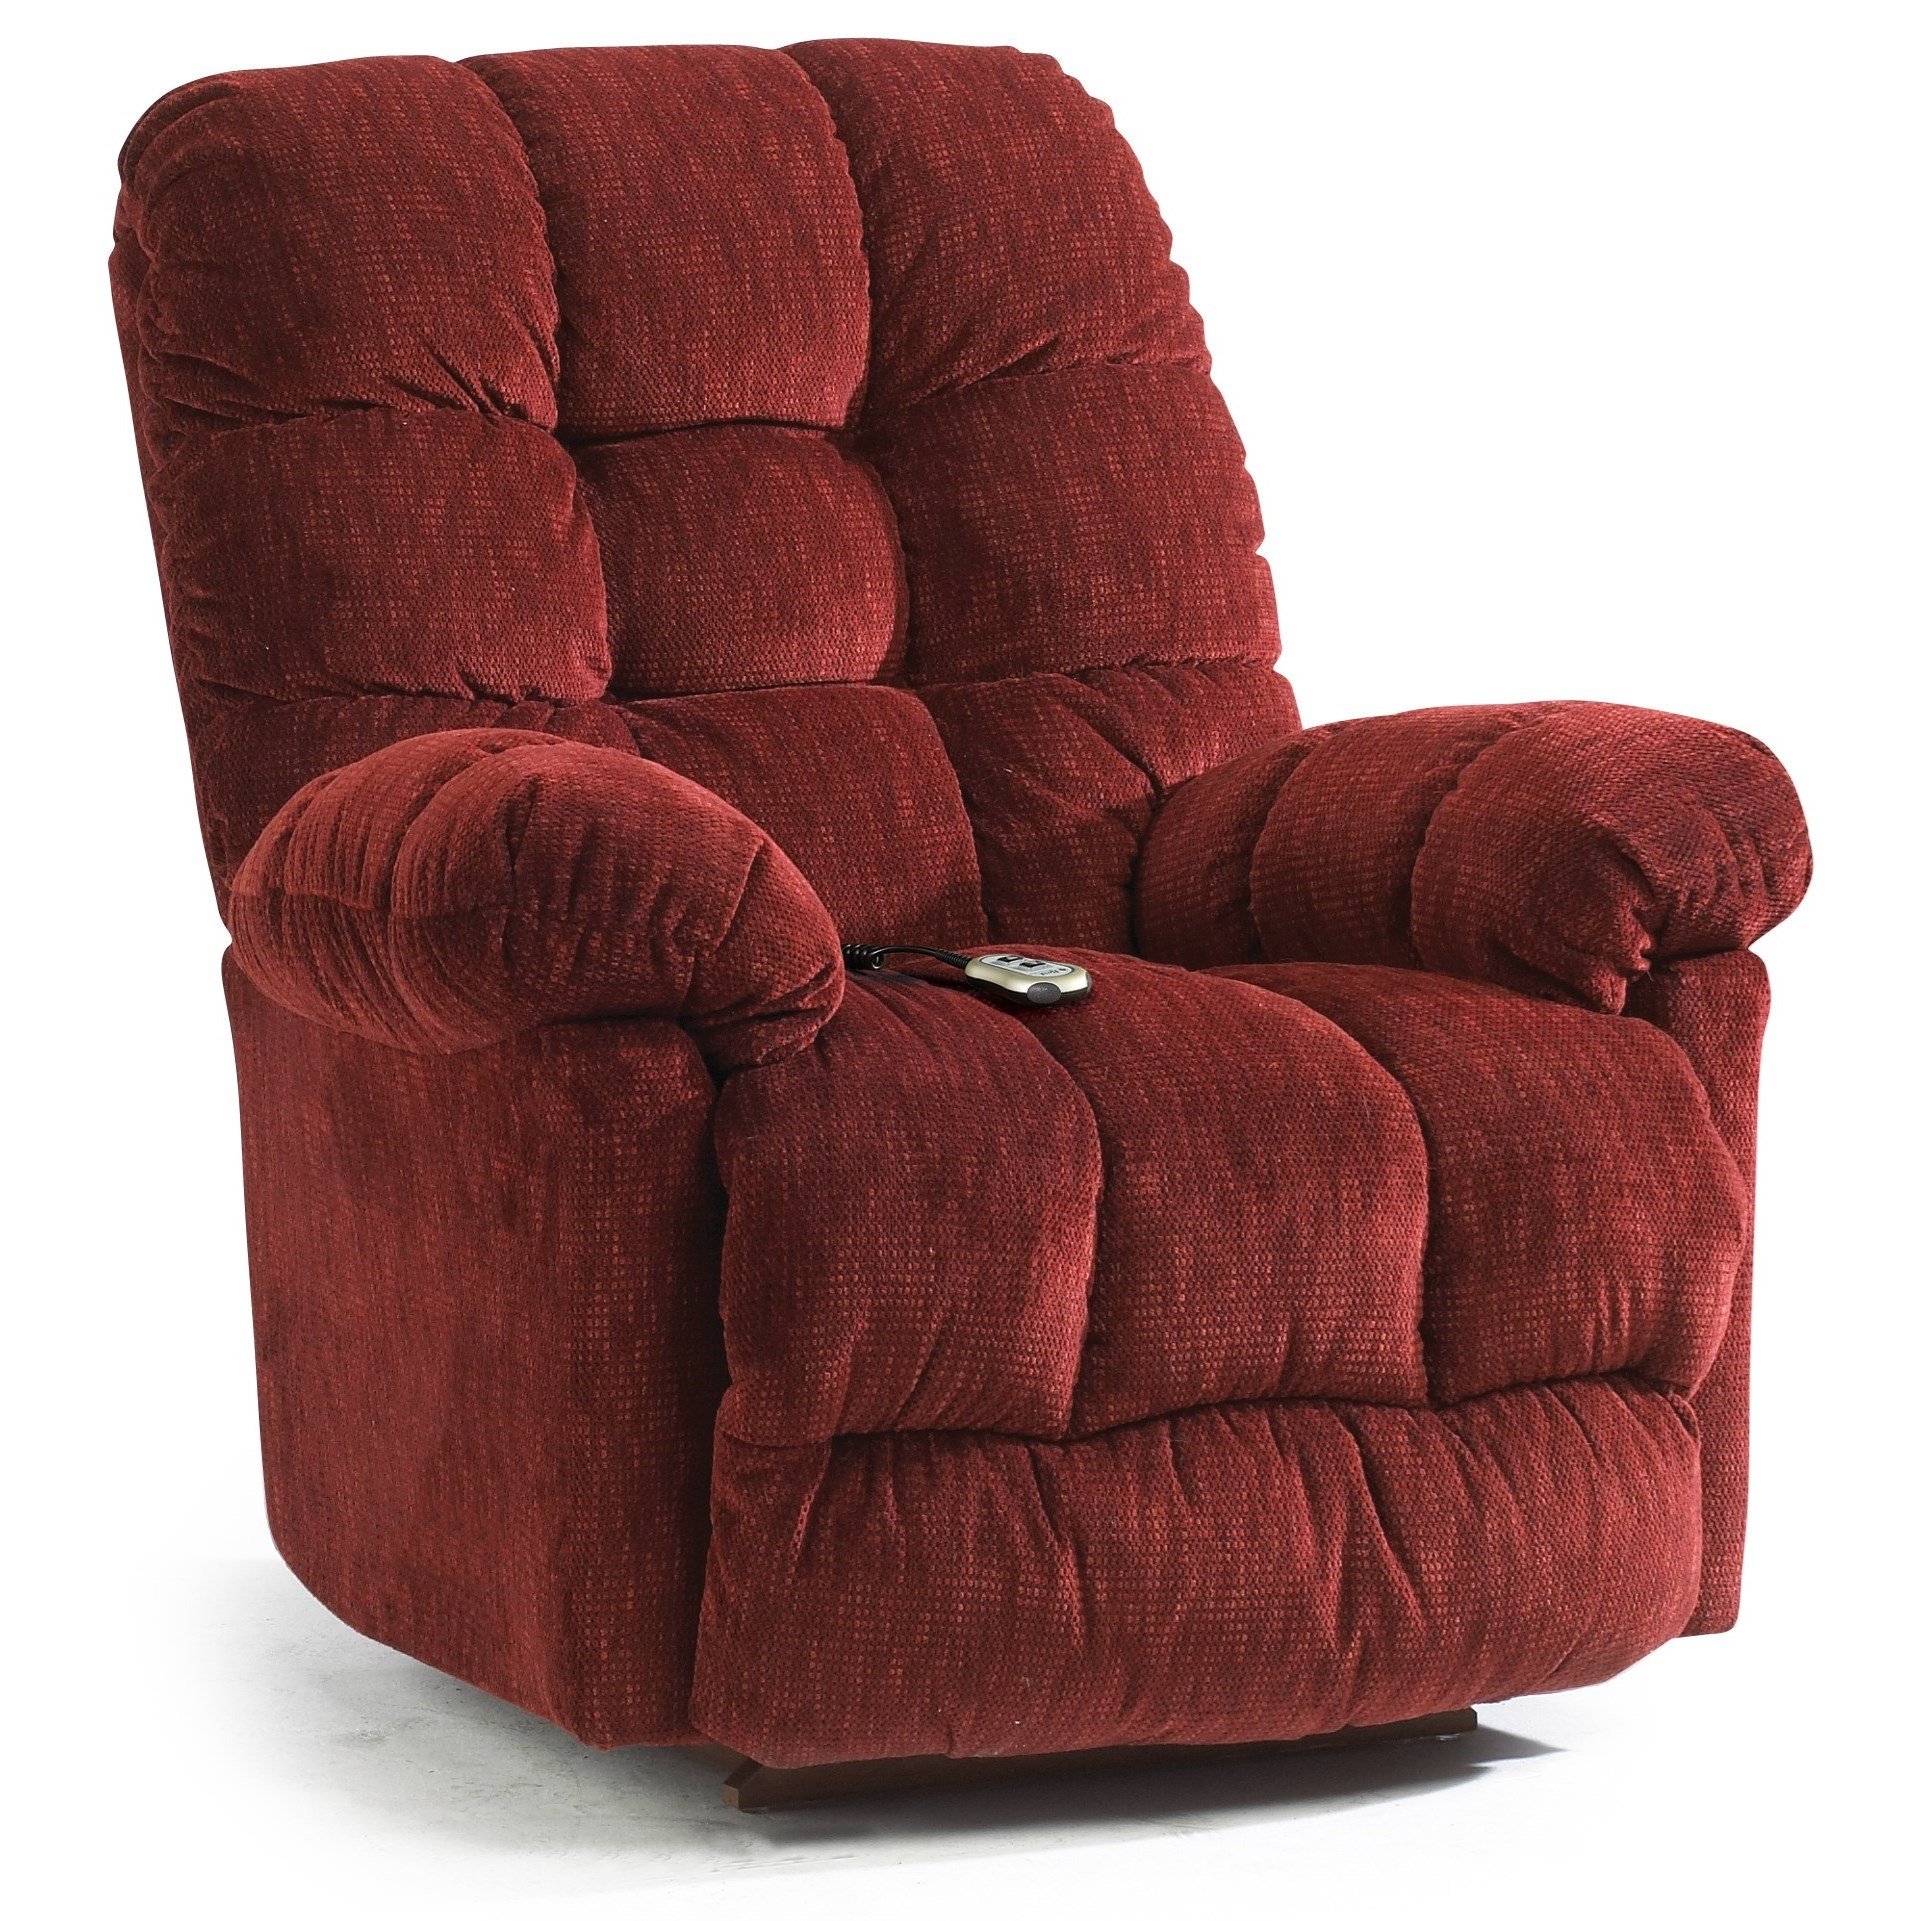 Medium Recliners Brosmer Power Rocker Recliner by Best Home Furnishings at Baer's Furniture